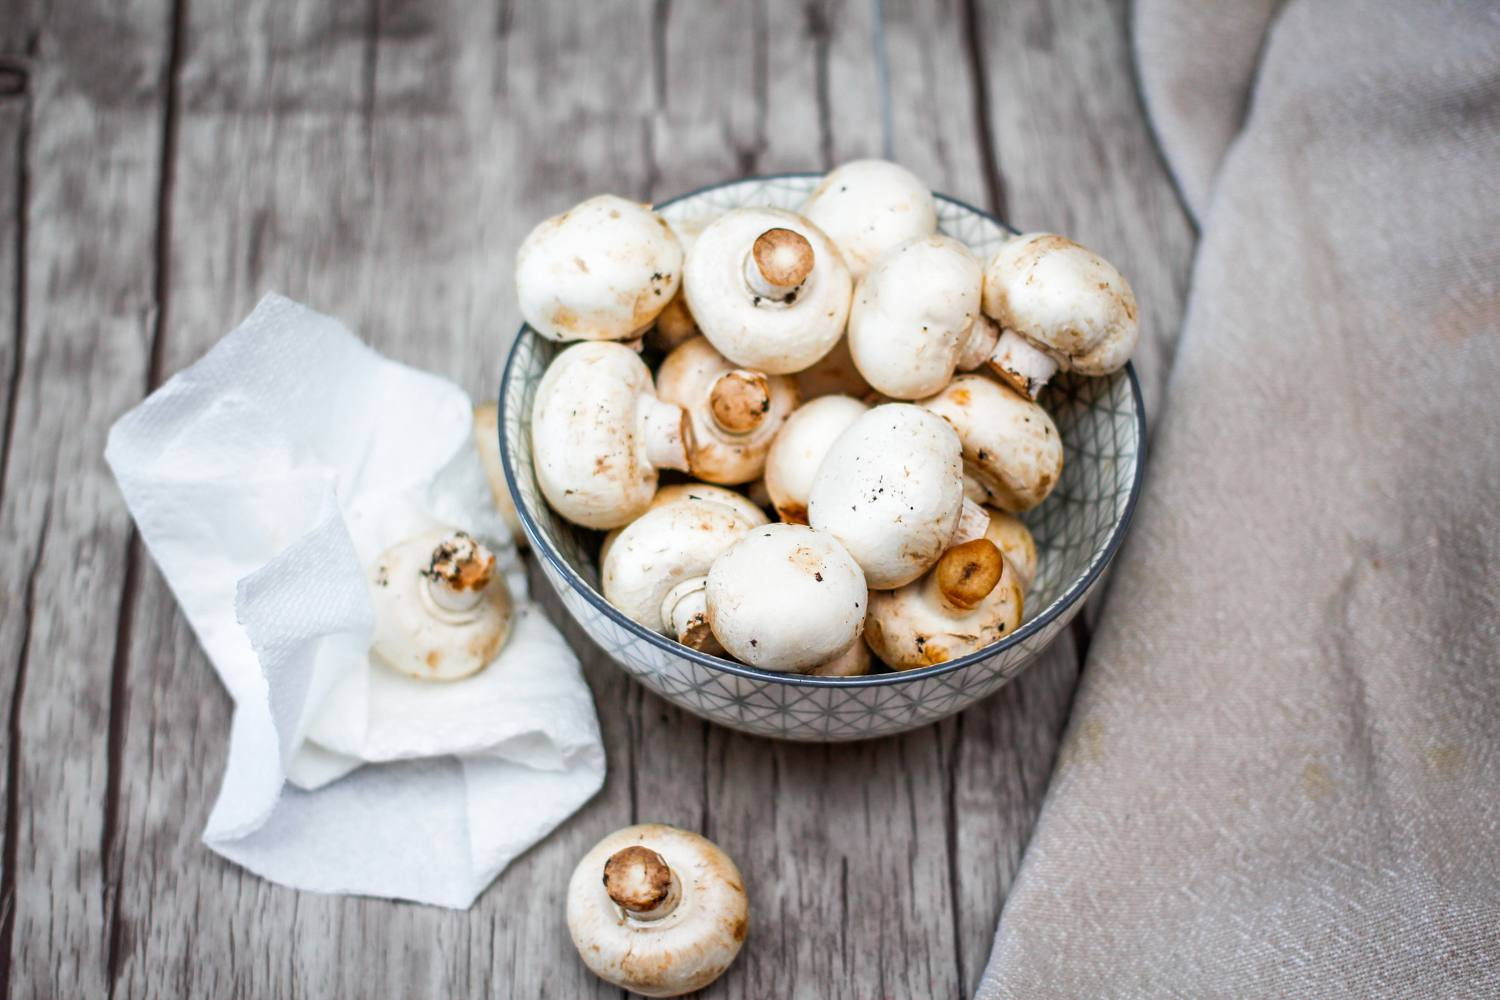 clean and dry mushrooms